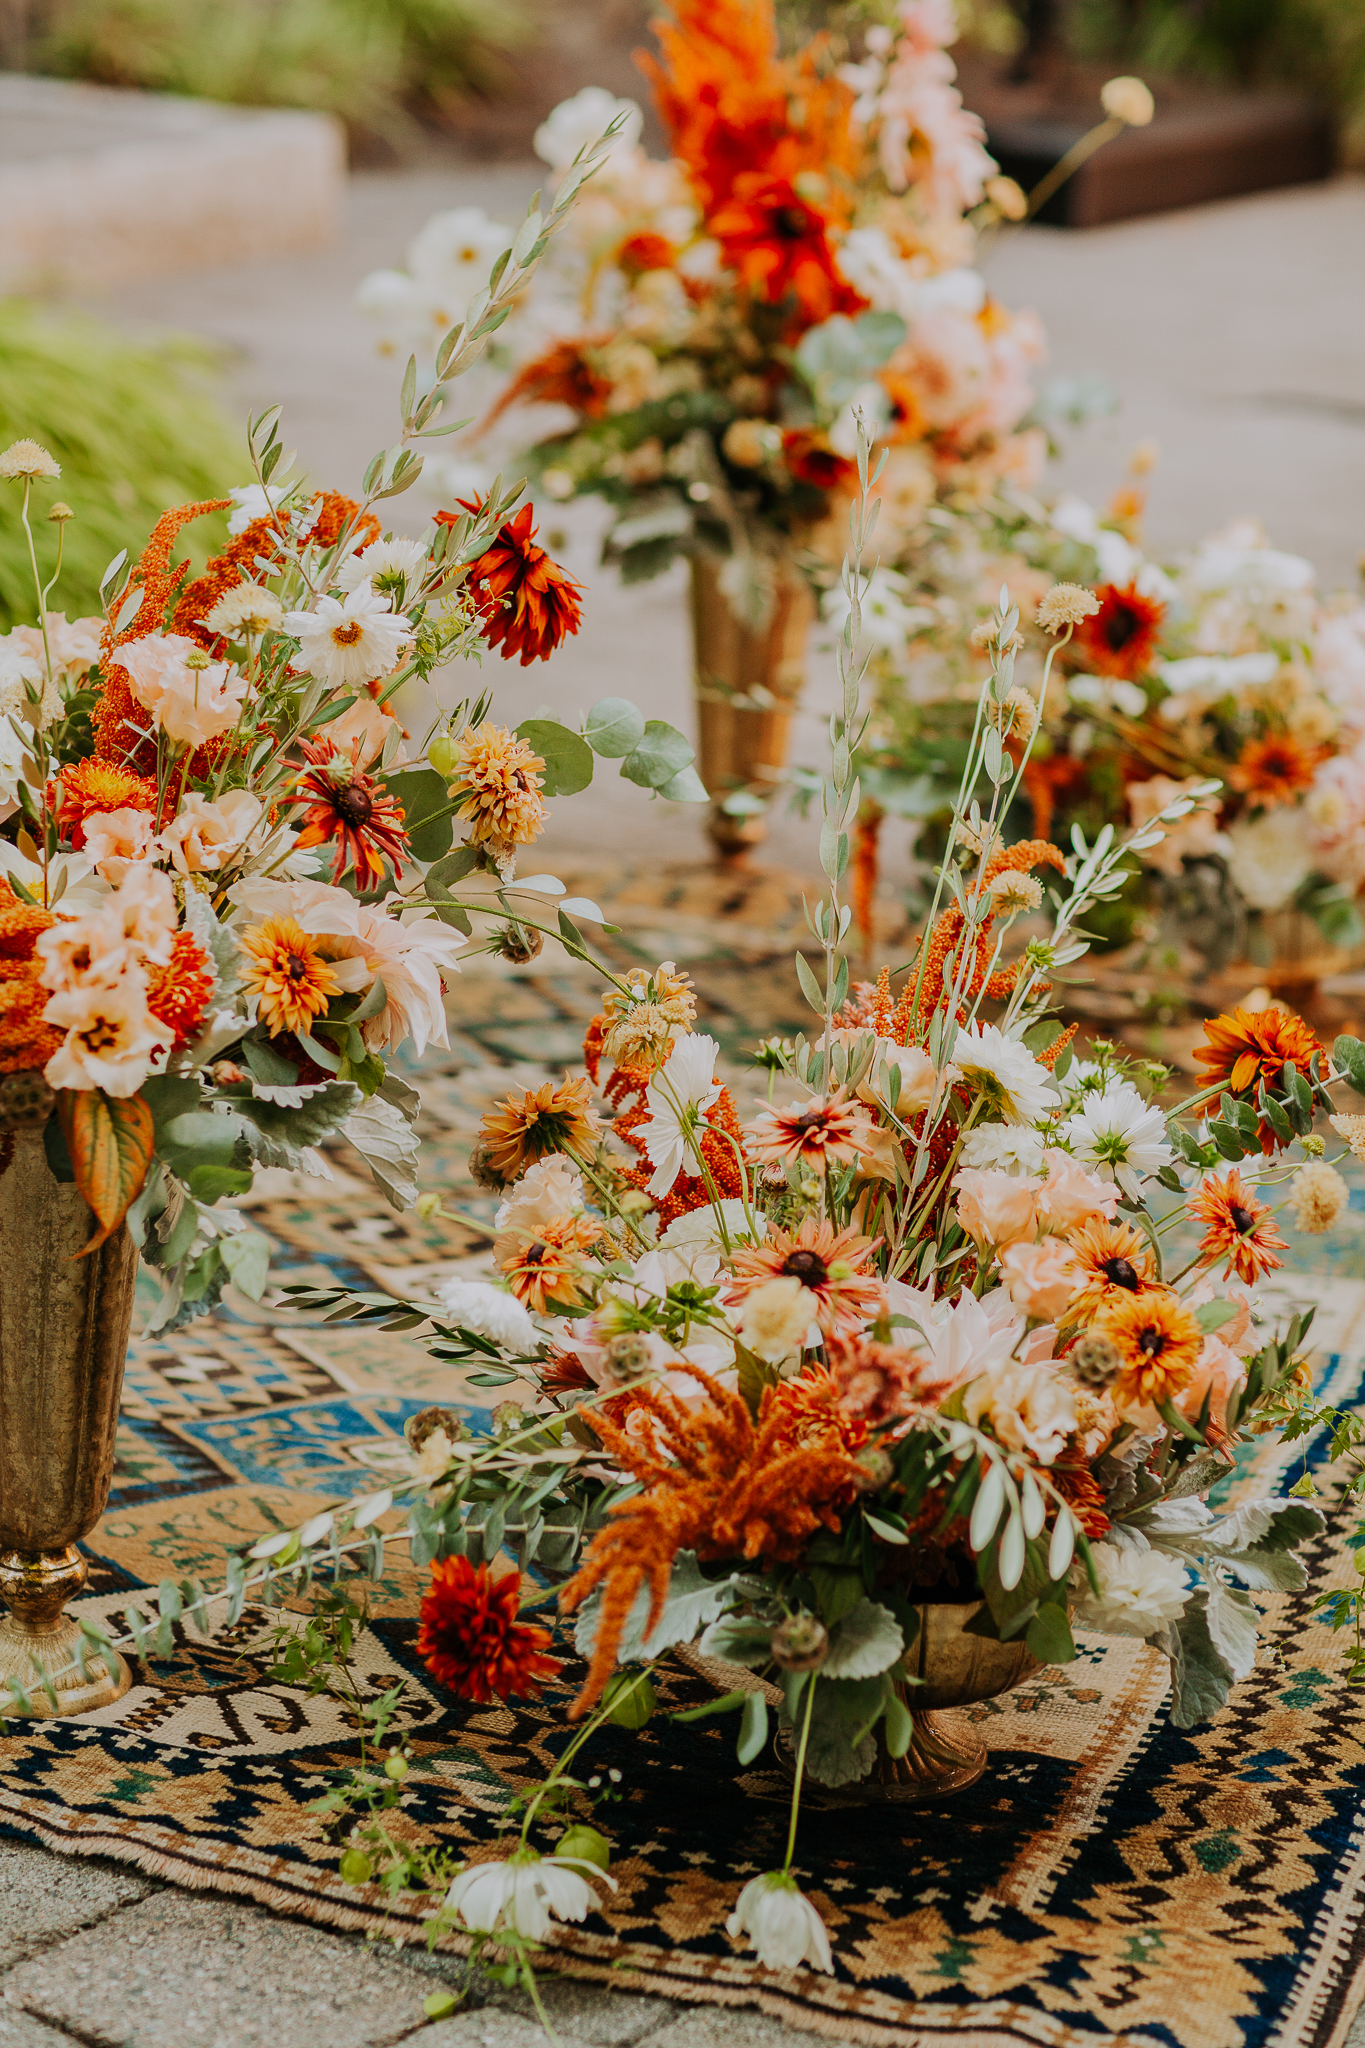 seattle floral design seattle florist seattle floral designer seattle florals washington floral design washington florist washington floral designer washington florals seattle wedding florist seattle wedding flowers seattle wedding floral design seattle wedding floral designer washington wedding florist washington wedding floral design washington wedding floral designer washington wedding florals washington small wedding washington backyard wedding washington elopement washington elopements seattle small wedding seattle backyard wedding seattle micro wedding seattle elopement seattle boho wedding seattle boho wedding flowers boho wedding flower inspiration arch alternatives alternatives to arches for wedding flowers